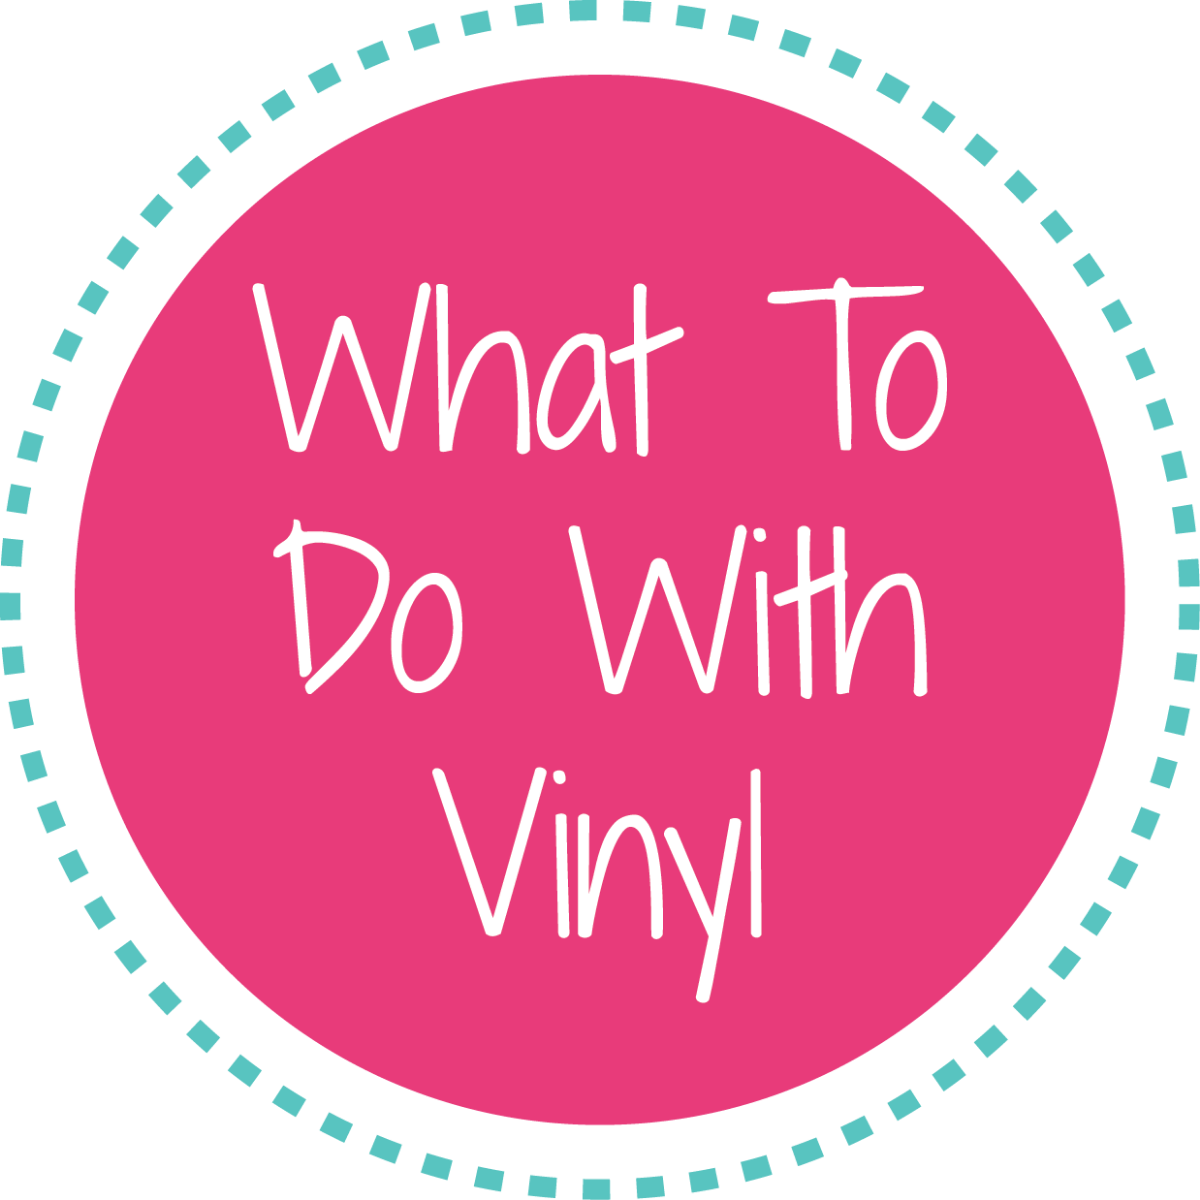 Click here to learn what you can do with vinyl